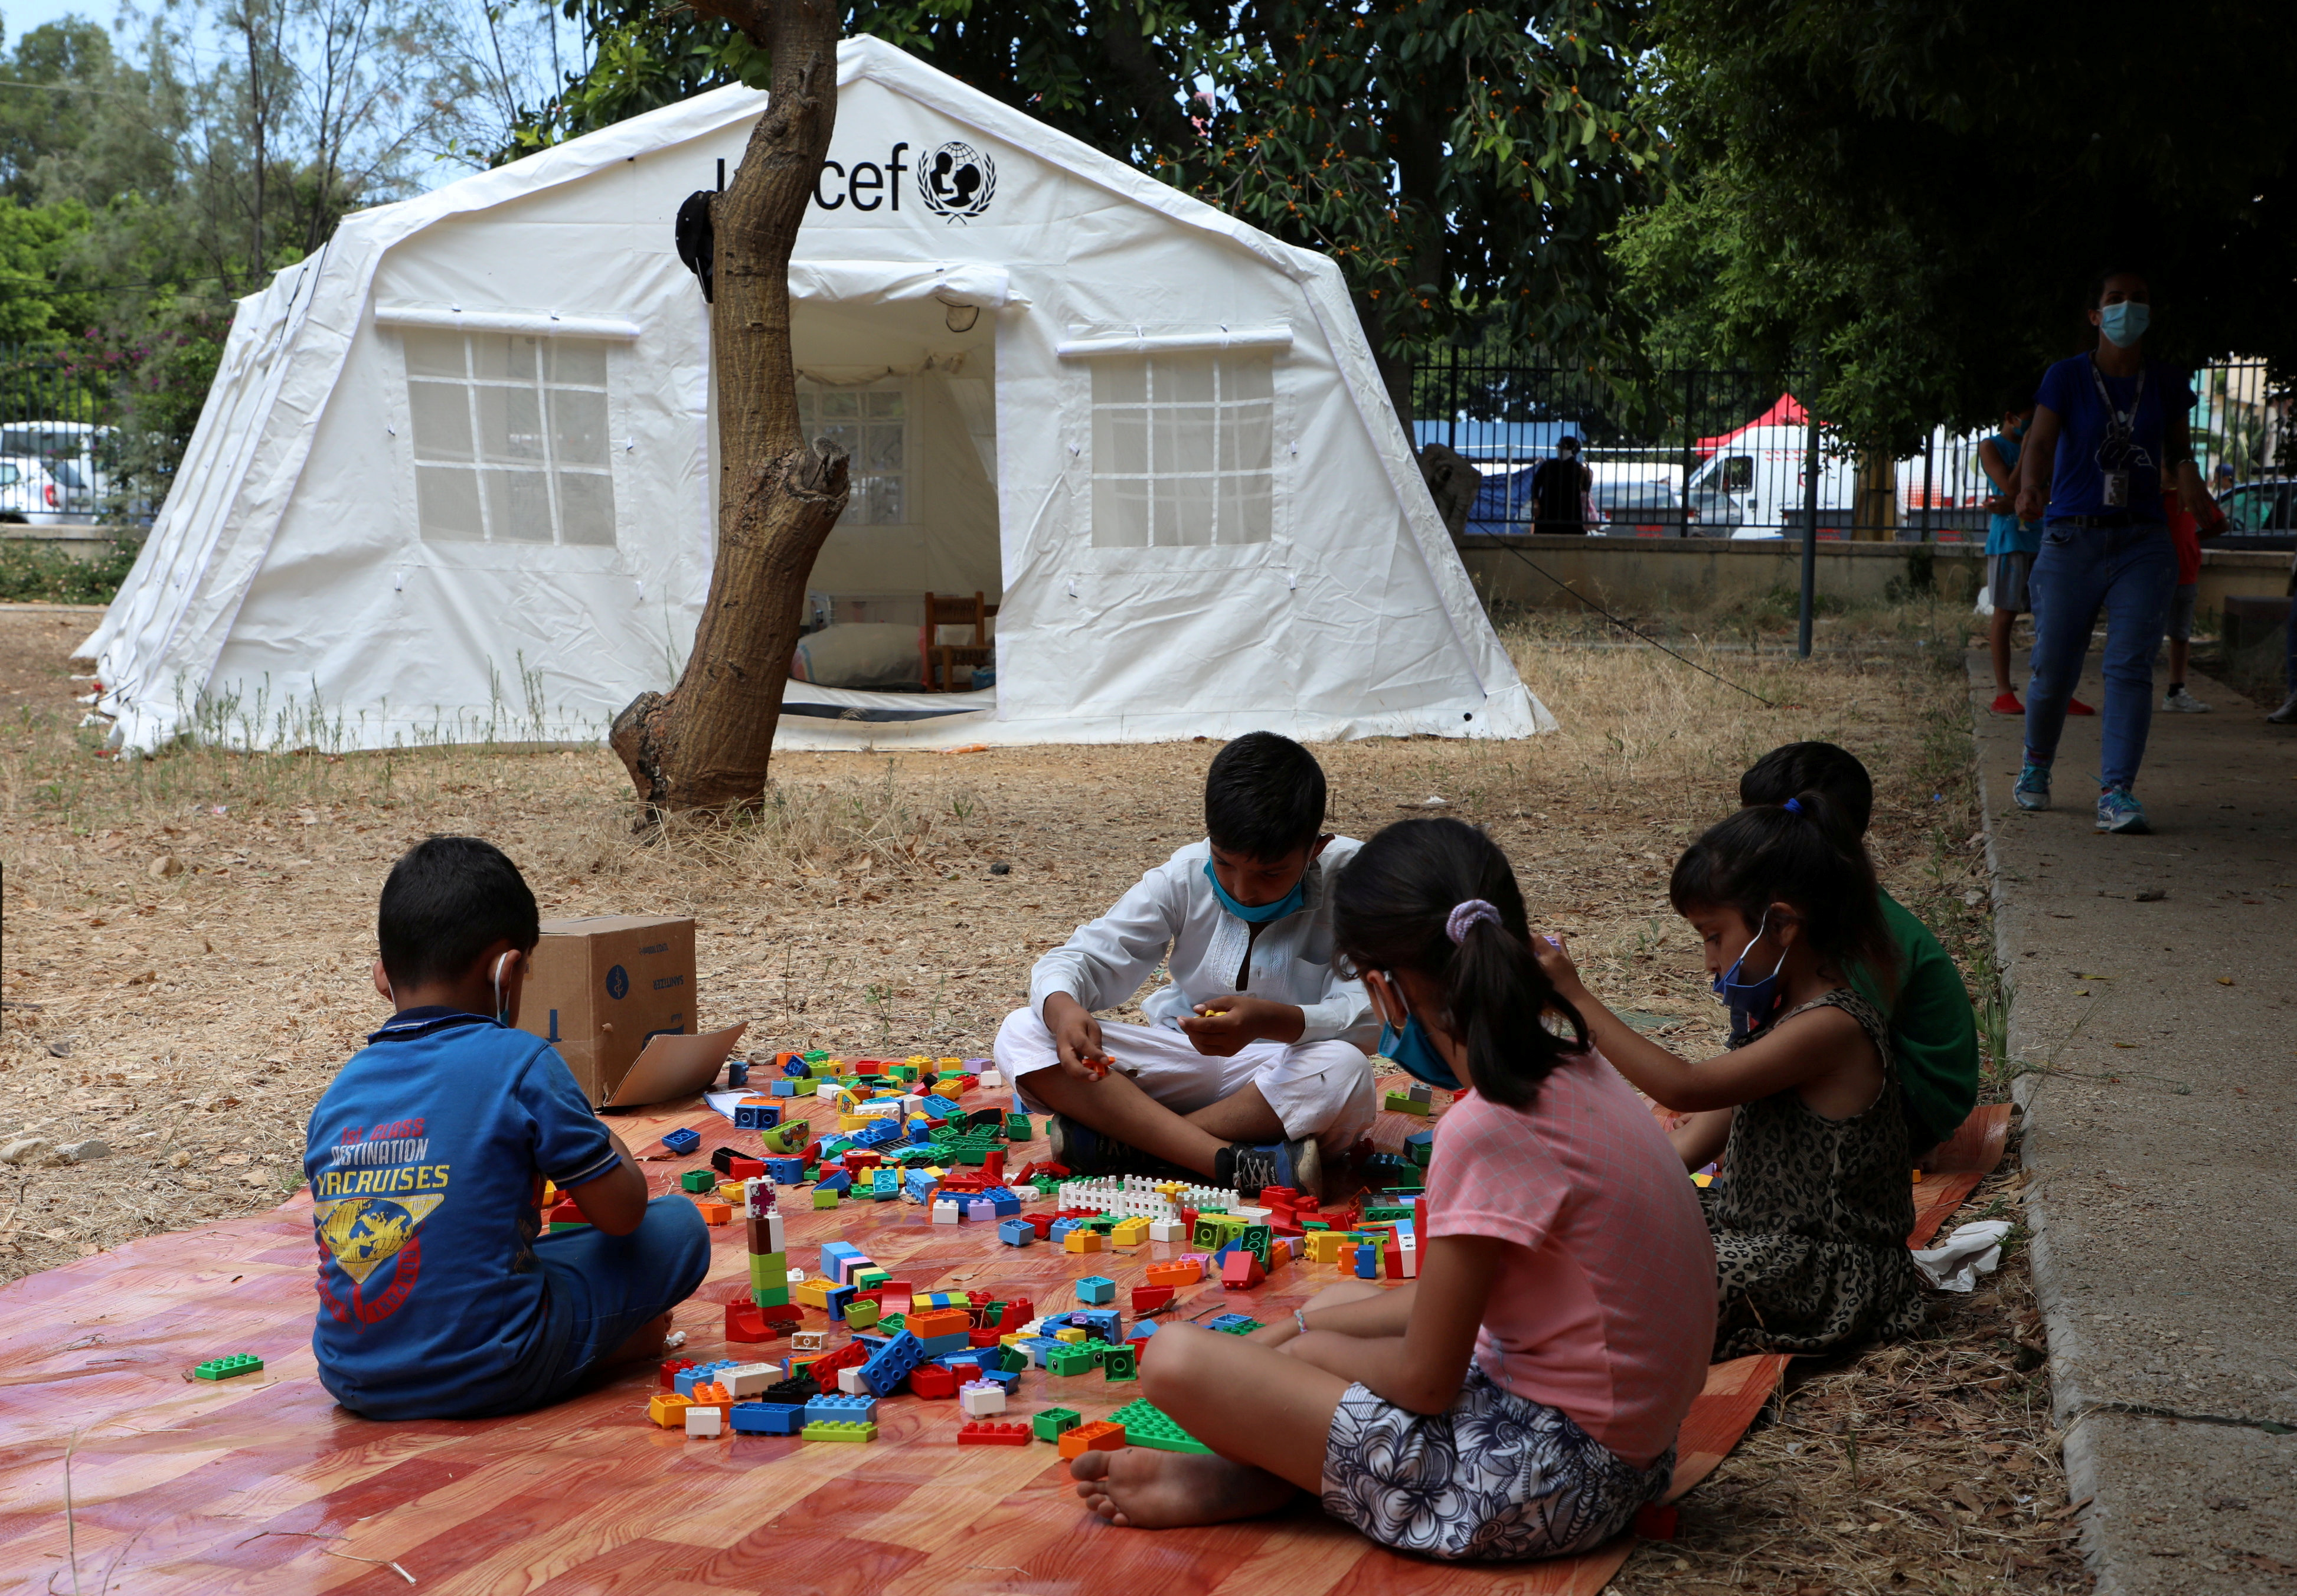 Children play outisde a UNICEF tent put in place to provide psychosocial support to people affected by a massive explosion in Beirut's port area, Lebanon August 20, 2020. Picture taken August 20, 2020. REUTERS/Mohamed Azakir/File Photo